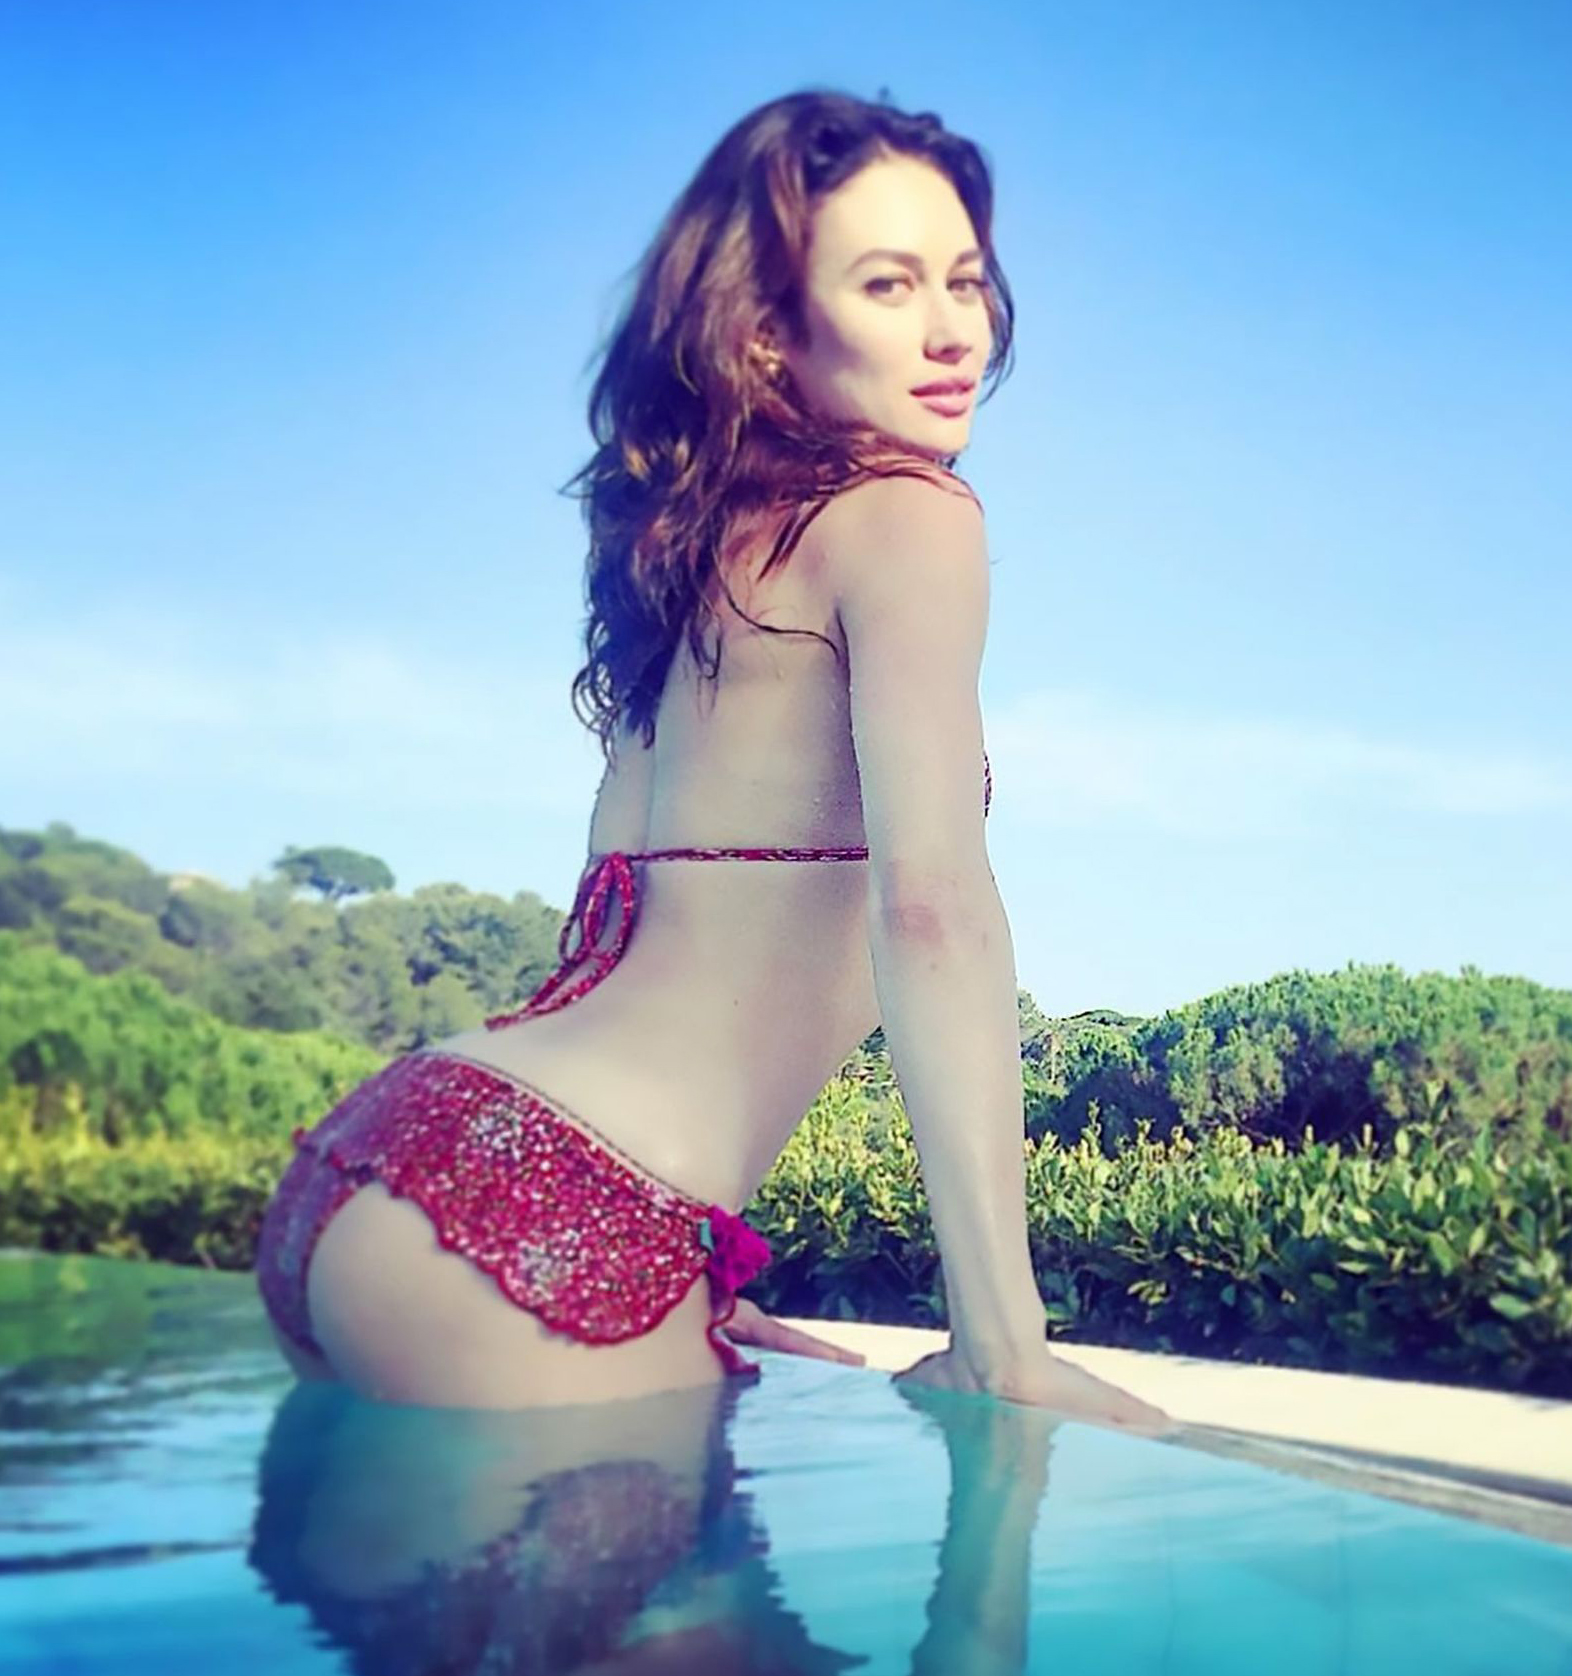 Olga Kurylenko Topless And Tiny Bikini Photos